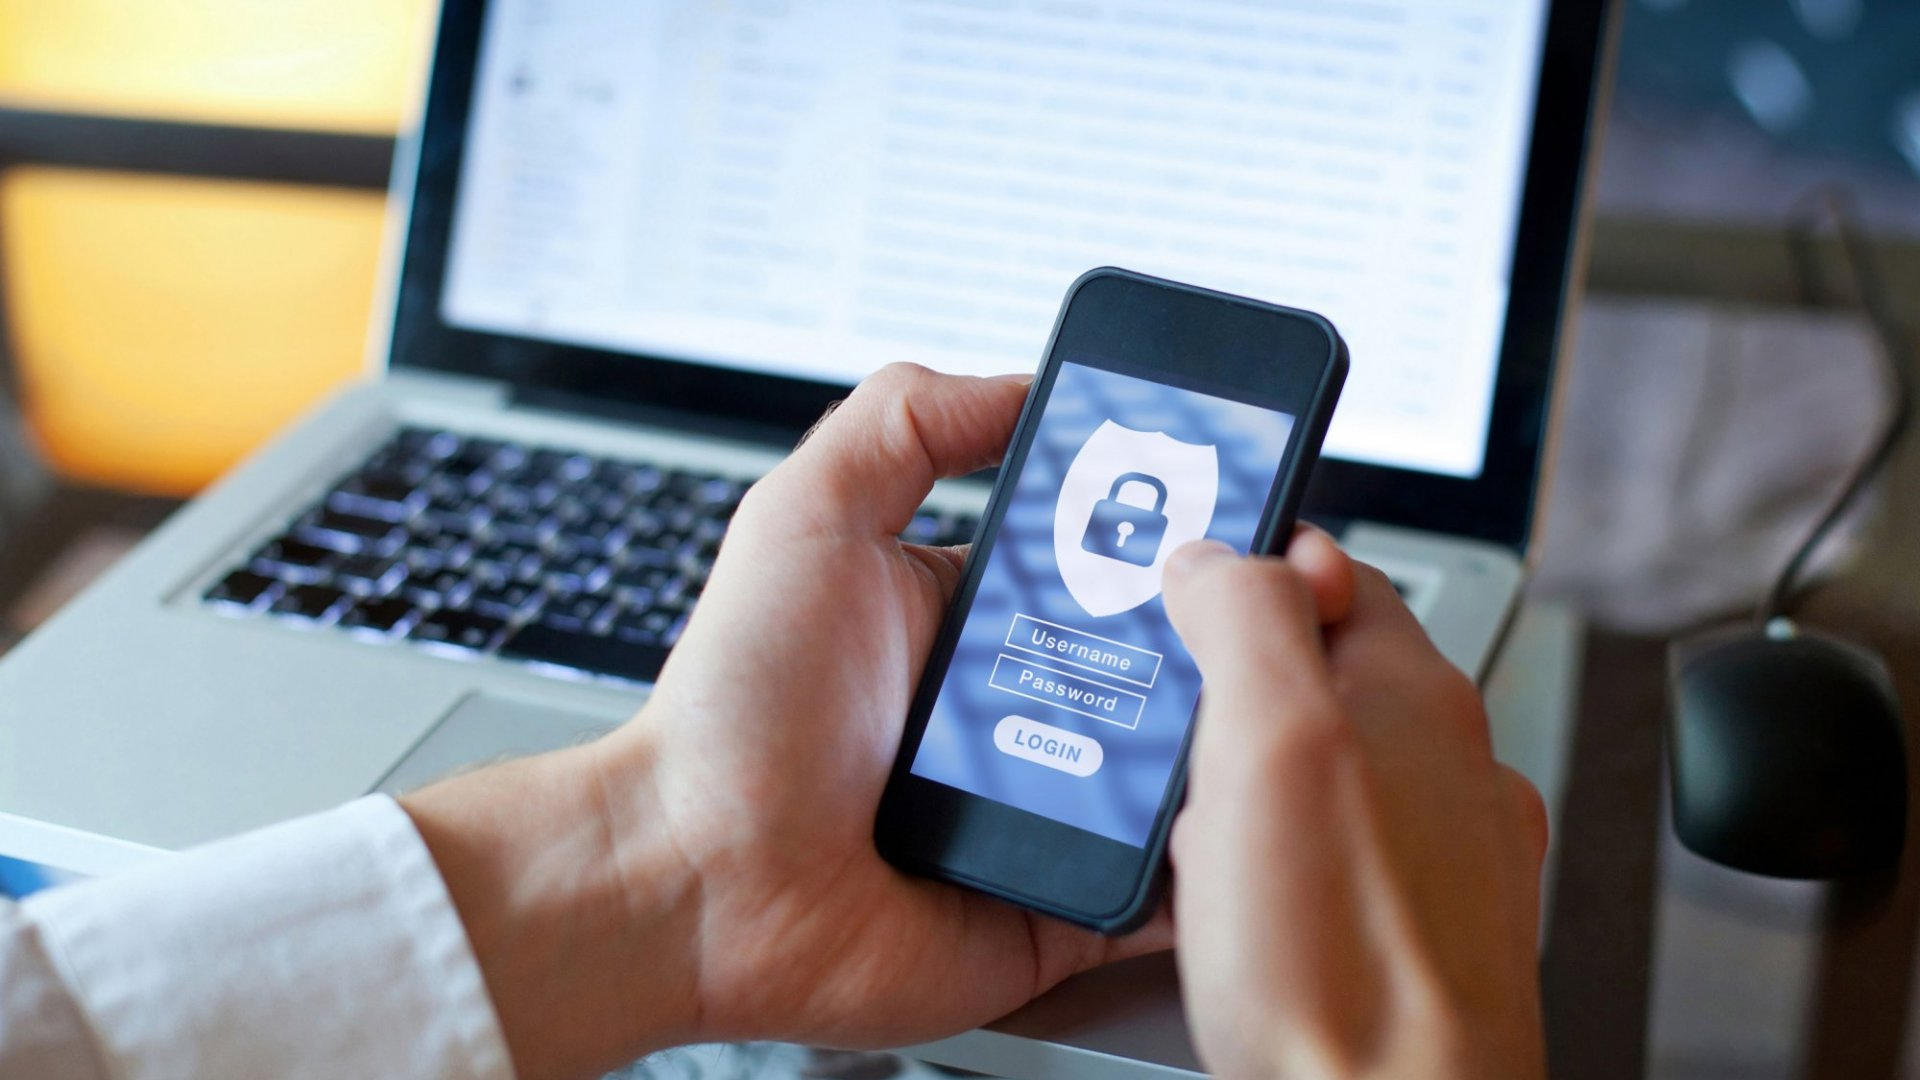 Every Small Business Faces Big Security Risks. Protect Yourself Using These 5 Steps